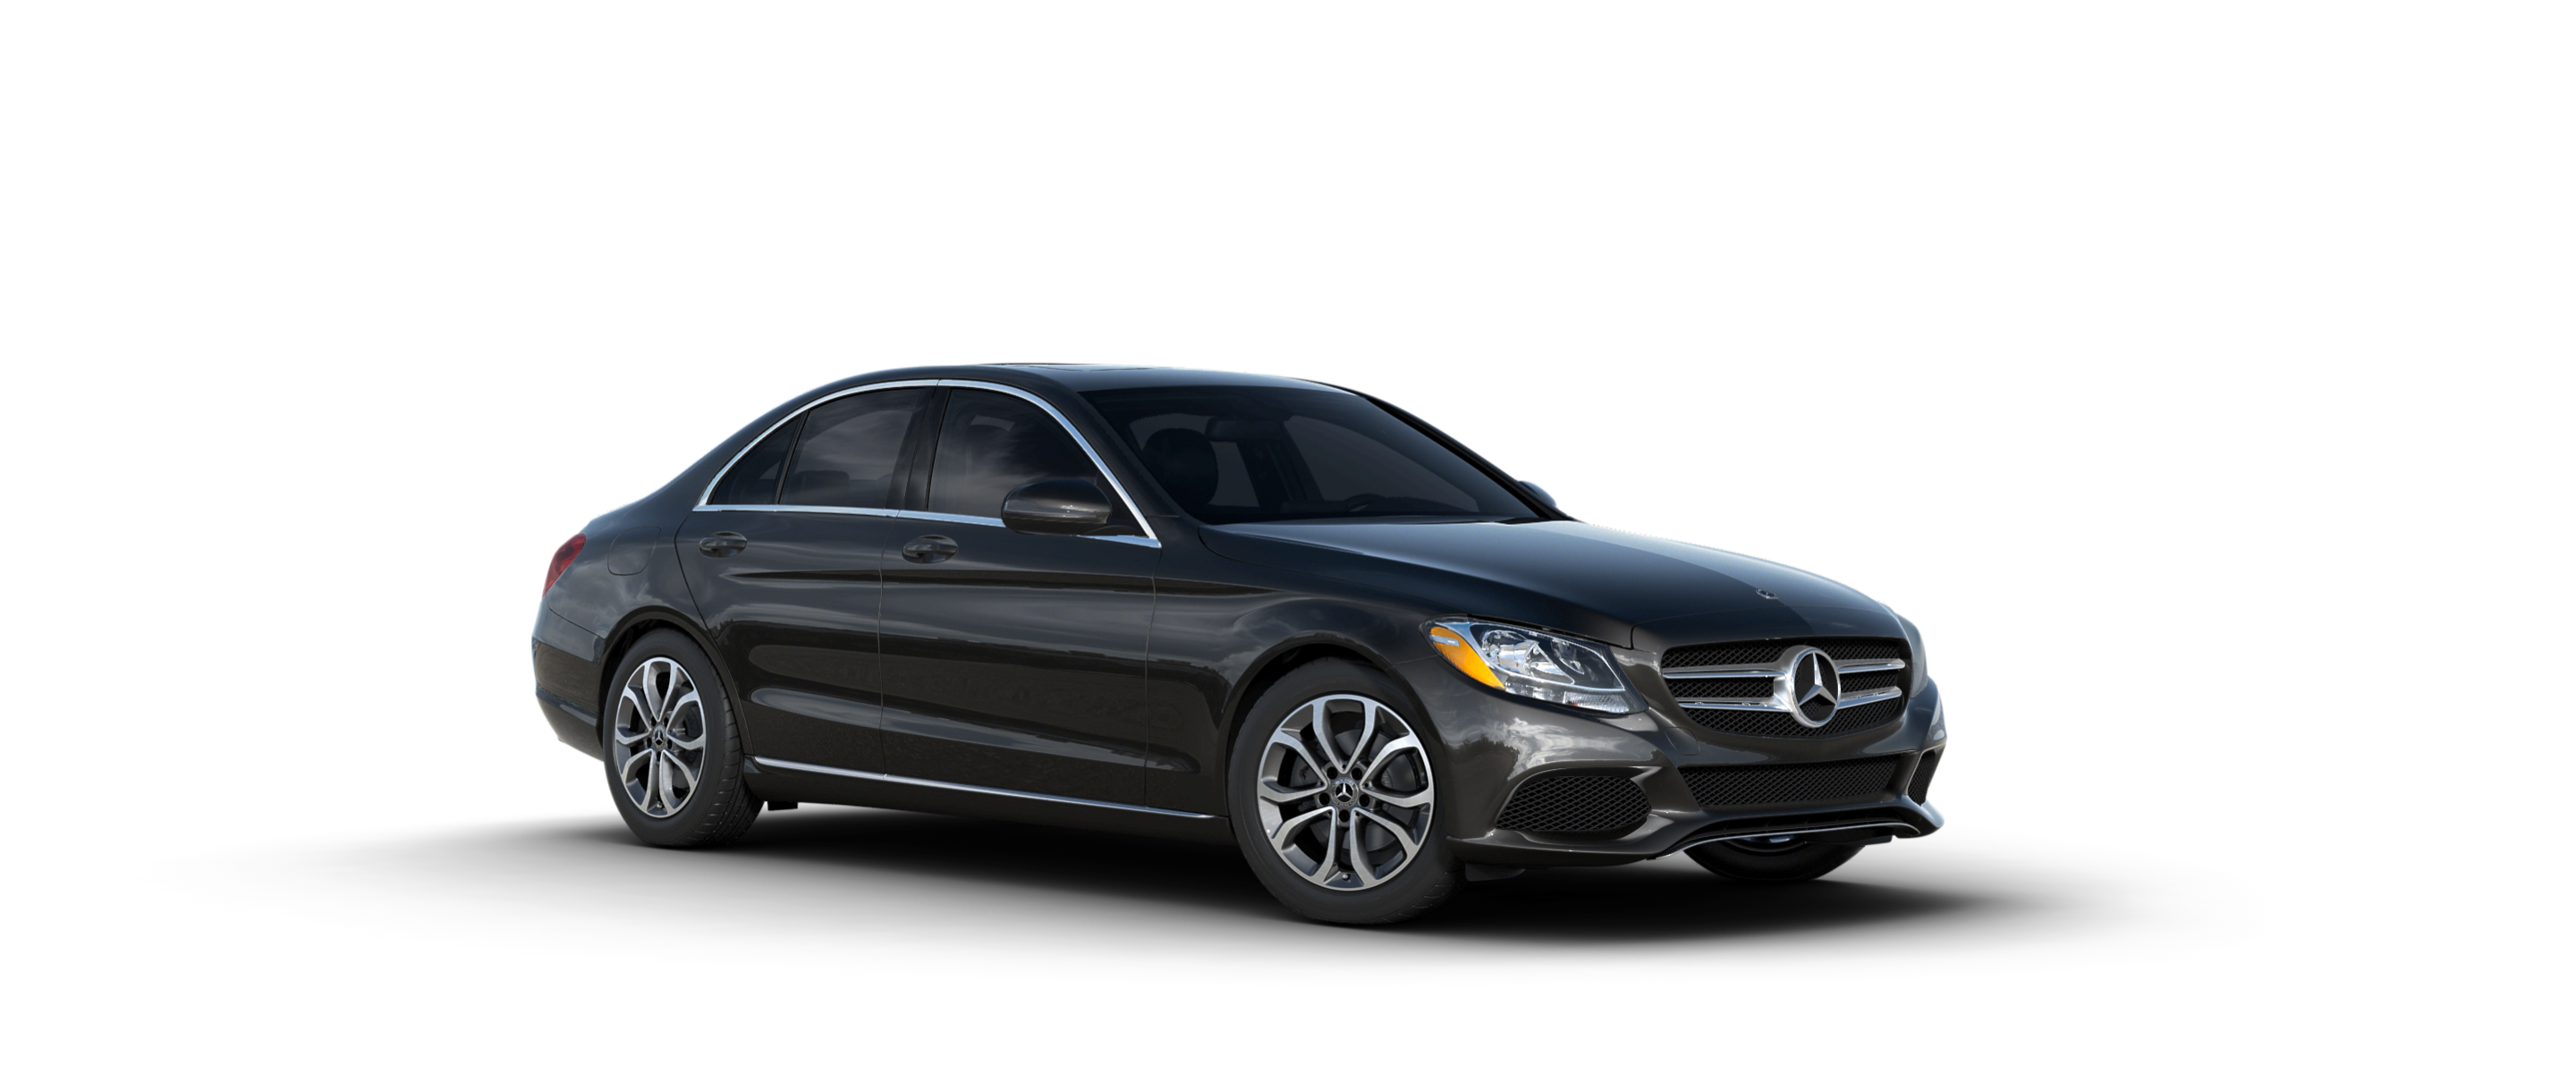 Color options for the 2018 mercedes benz c class sedan for Black mercedes benz c class